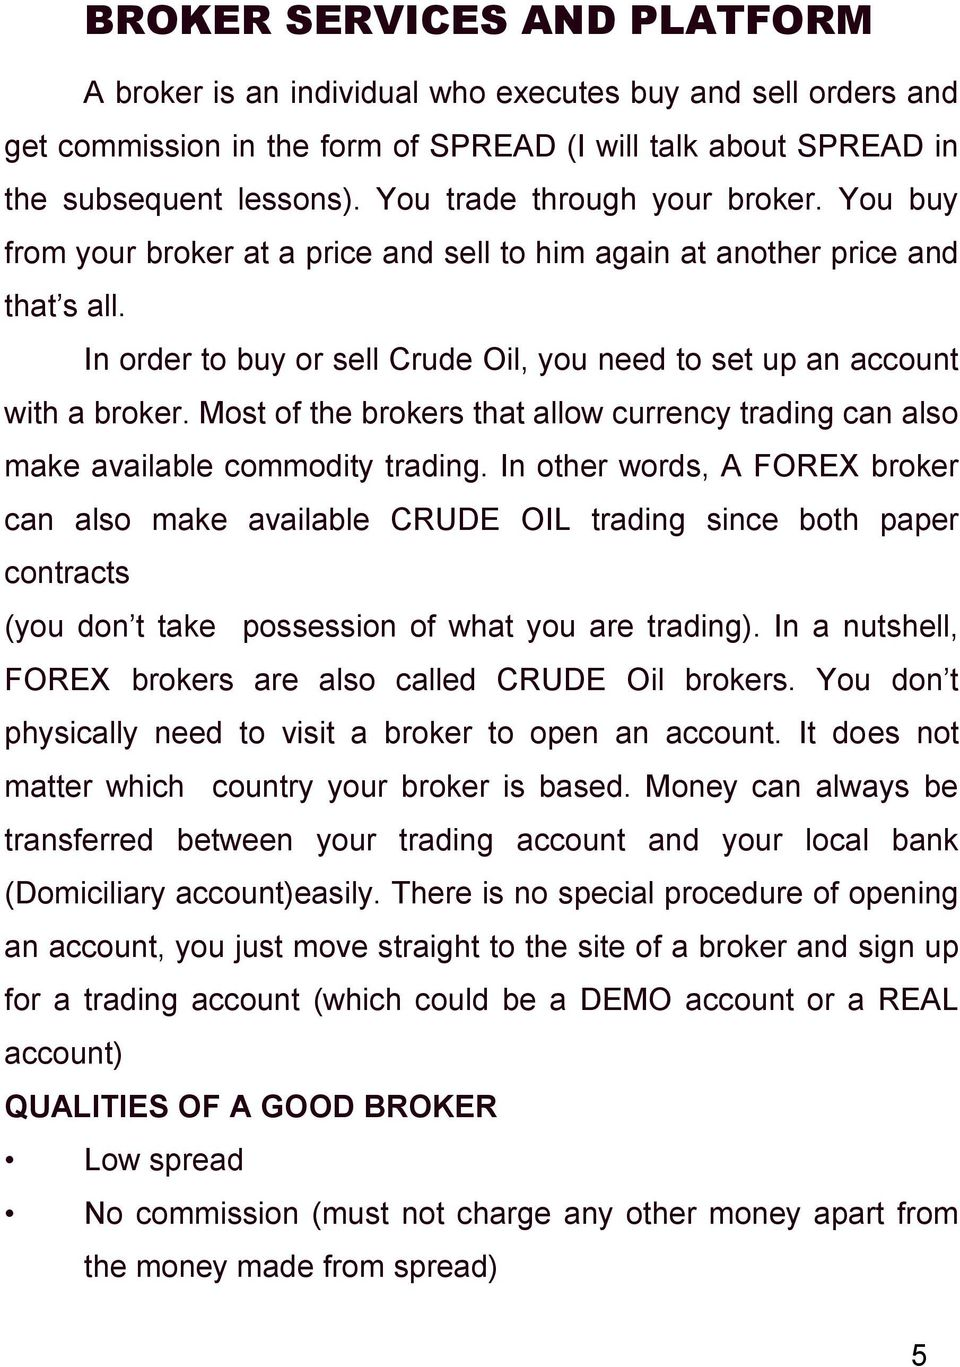 In order to buy or sell Crude Oil, you need to set up an account with a broker. Most of the brokers that allow currency trading can also make available commodity trading.